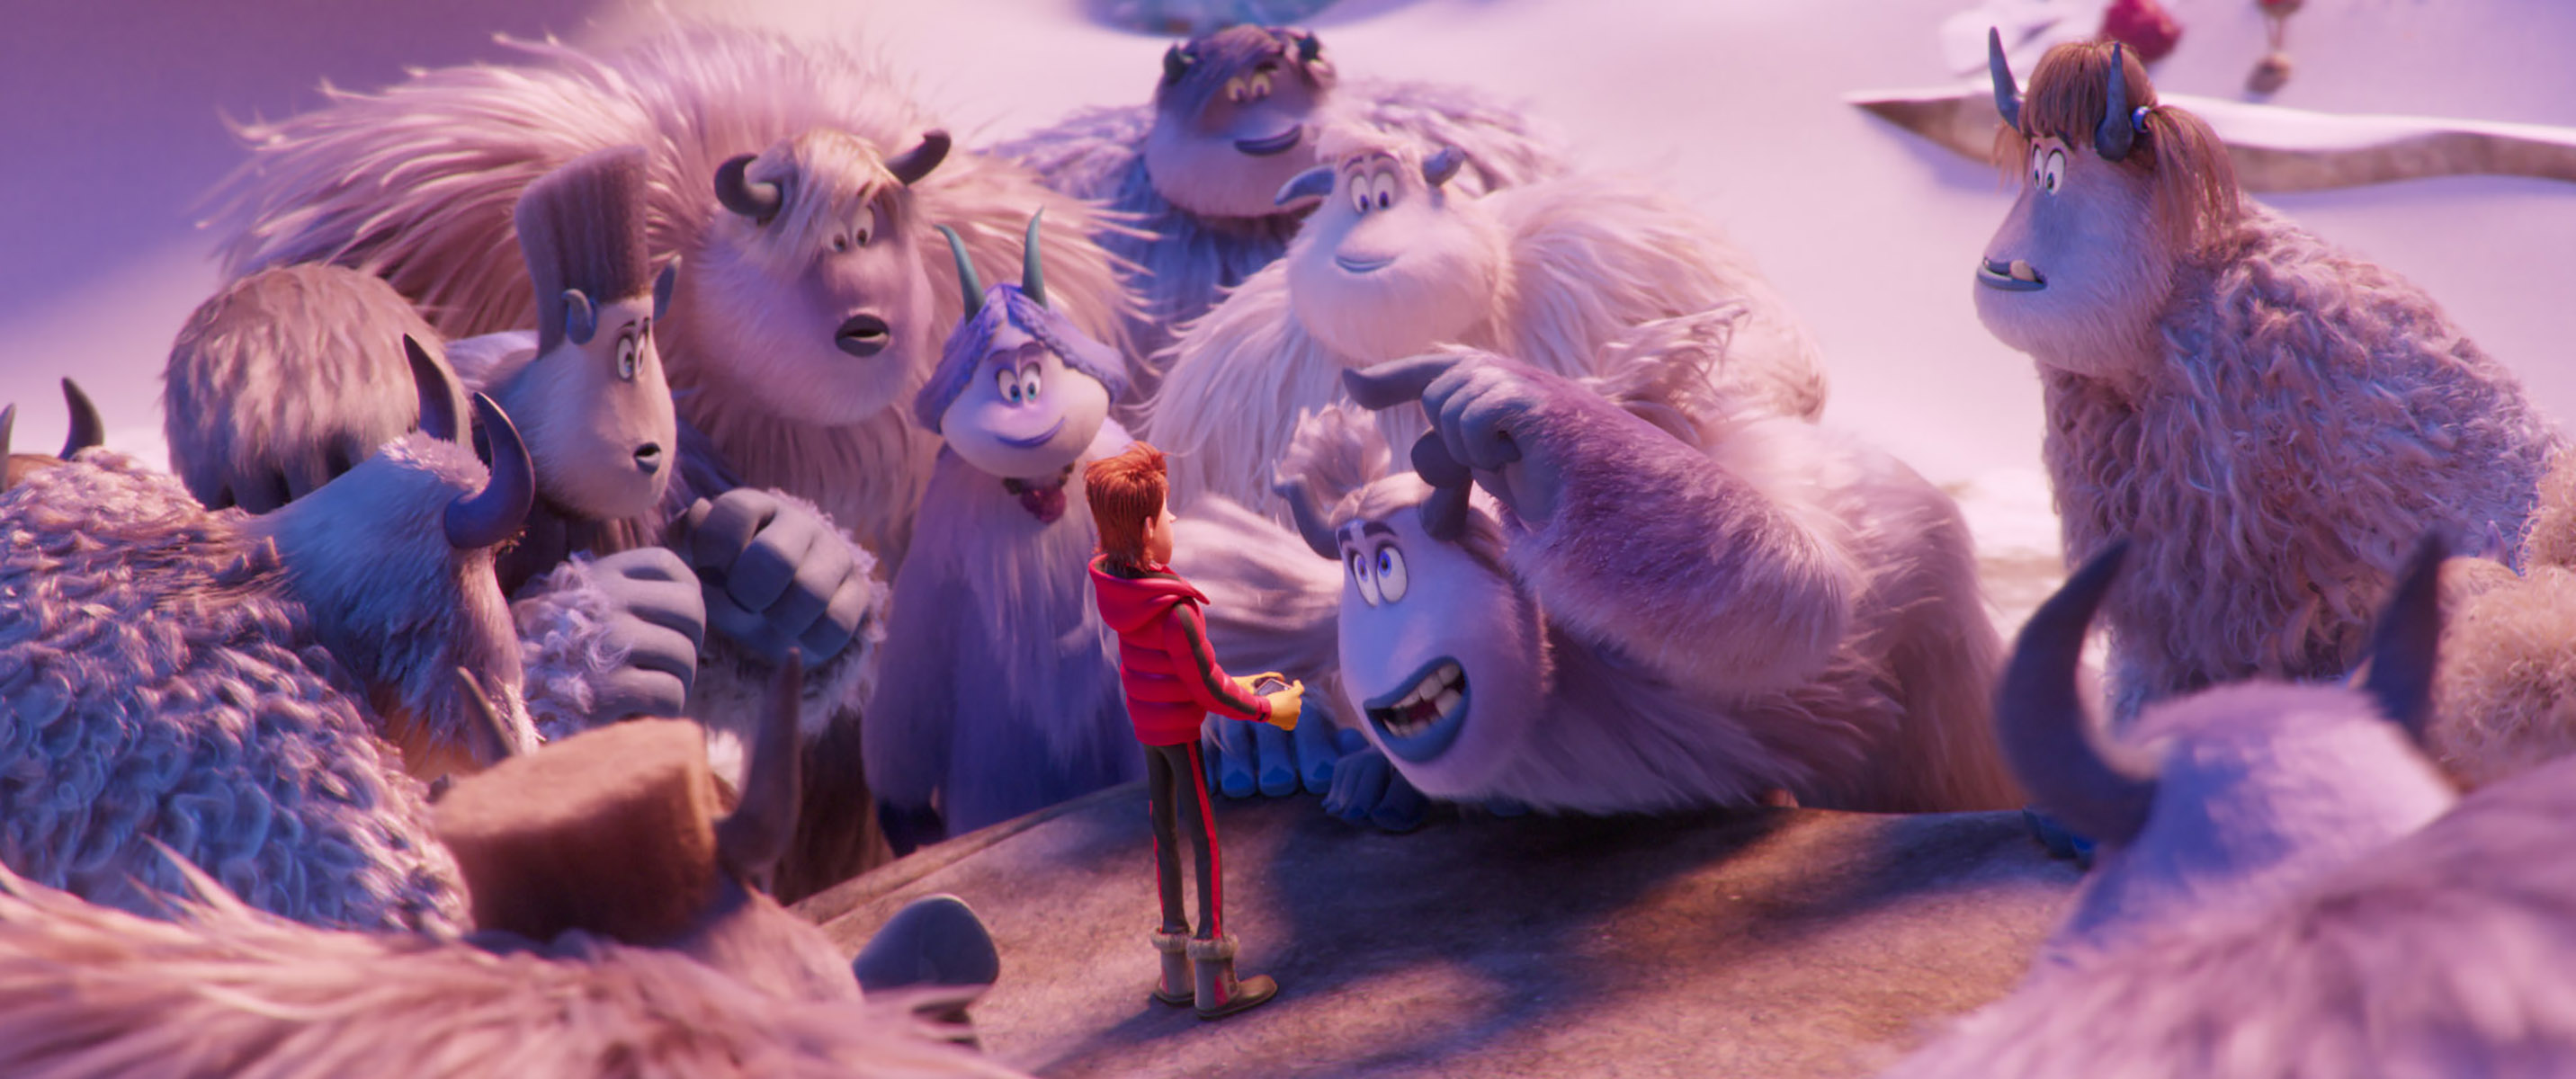 Smallfoot Gallery 26